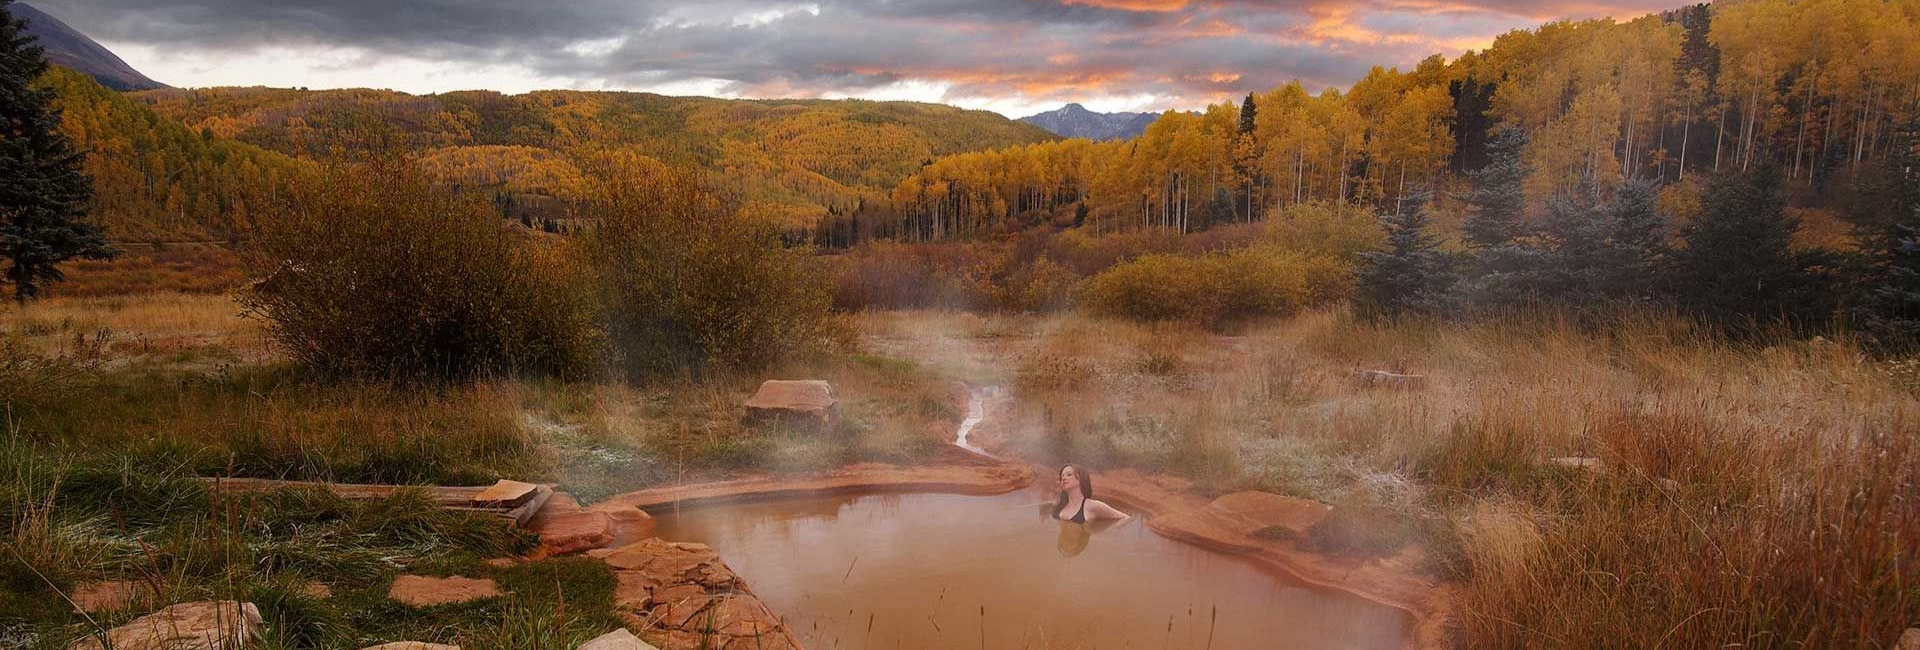 hot springs in the US at fall